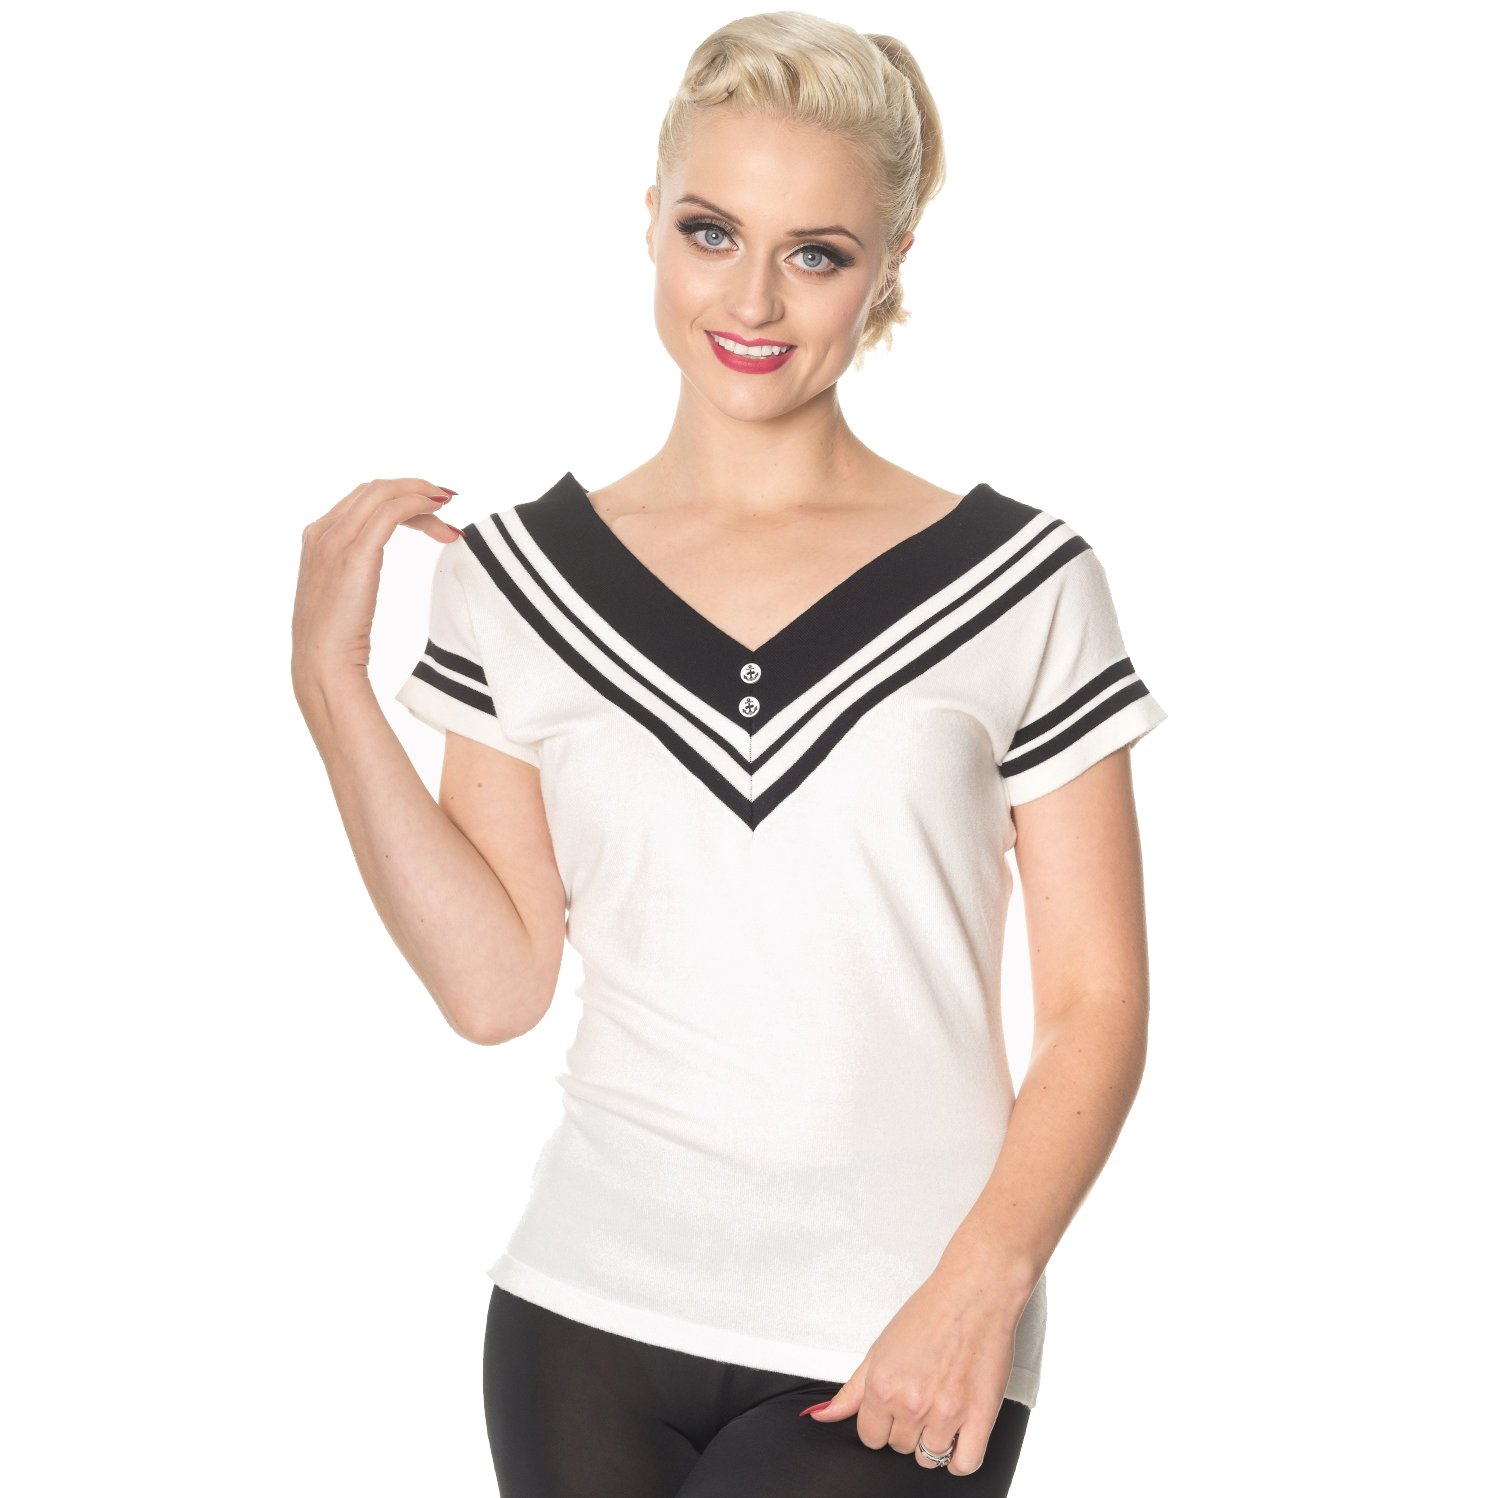 1940s Dresses and Clothing UK | 40s Shoes UK Dancing Days Cedar Nautical Sailor Short Sleeve 1950s Vintage Retro Sweater Top £26.99 AT vintagedancer.com